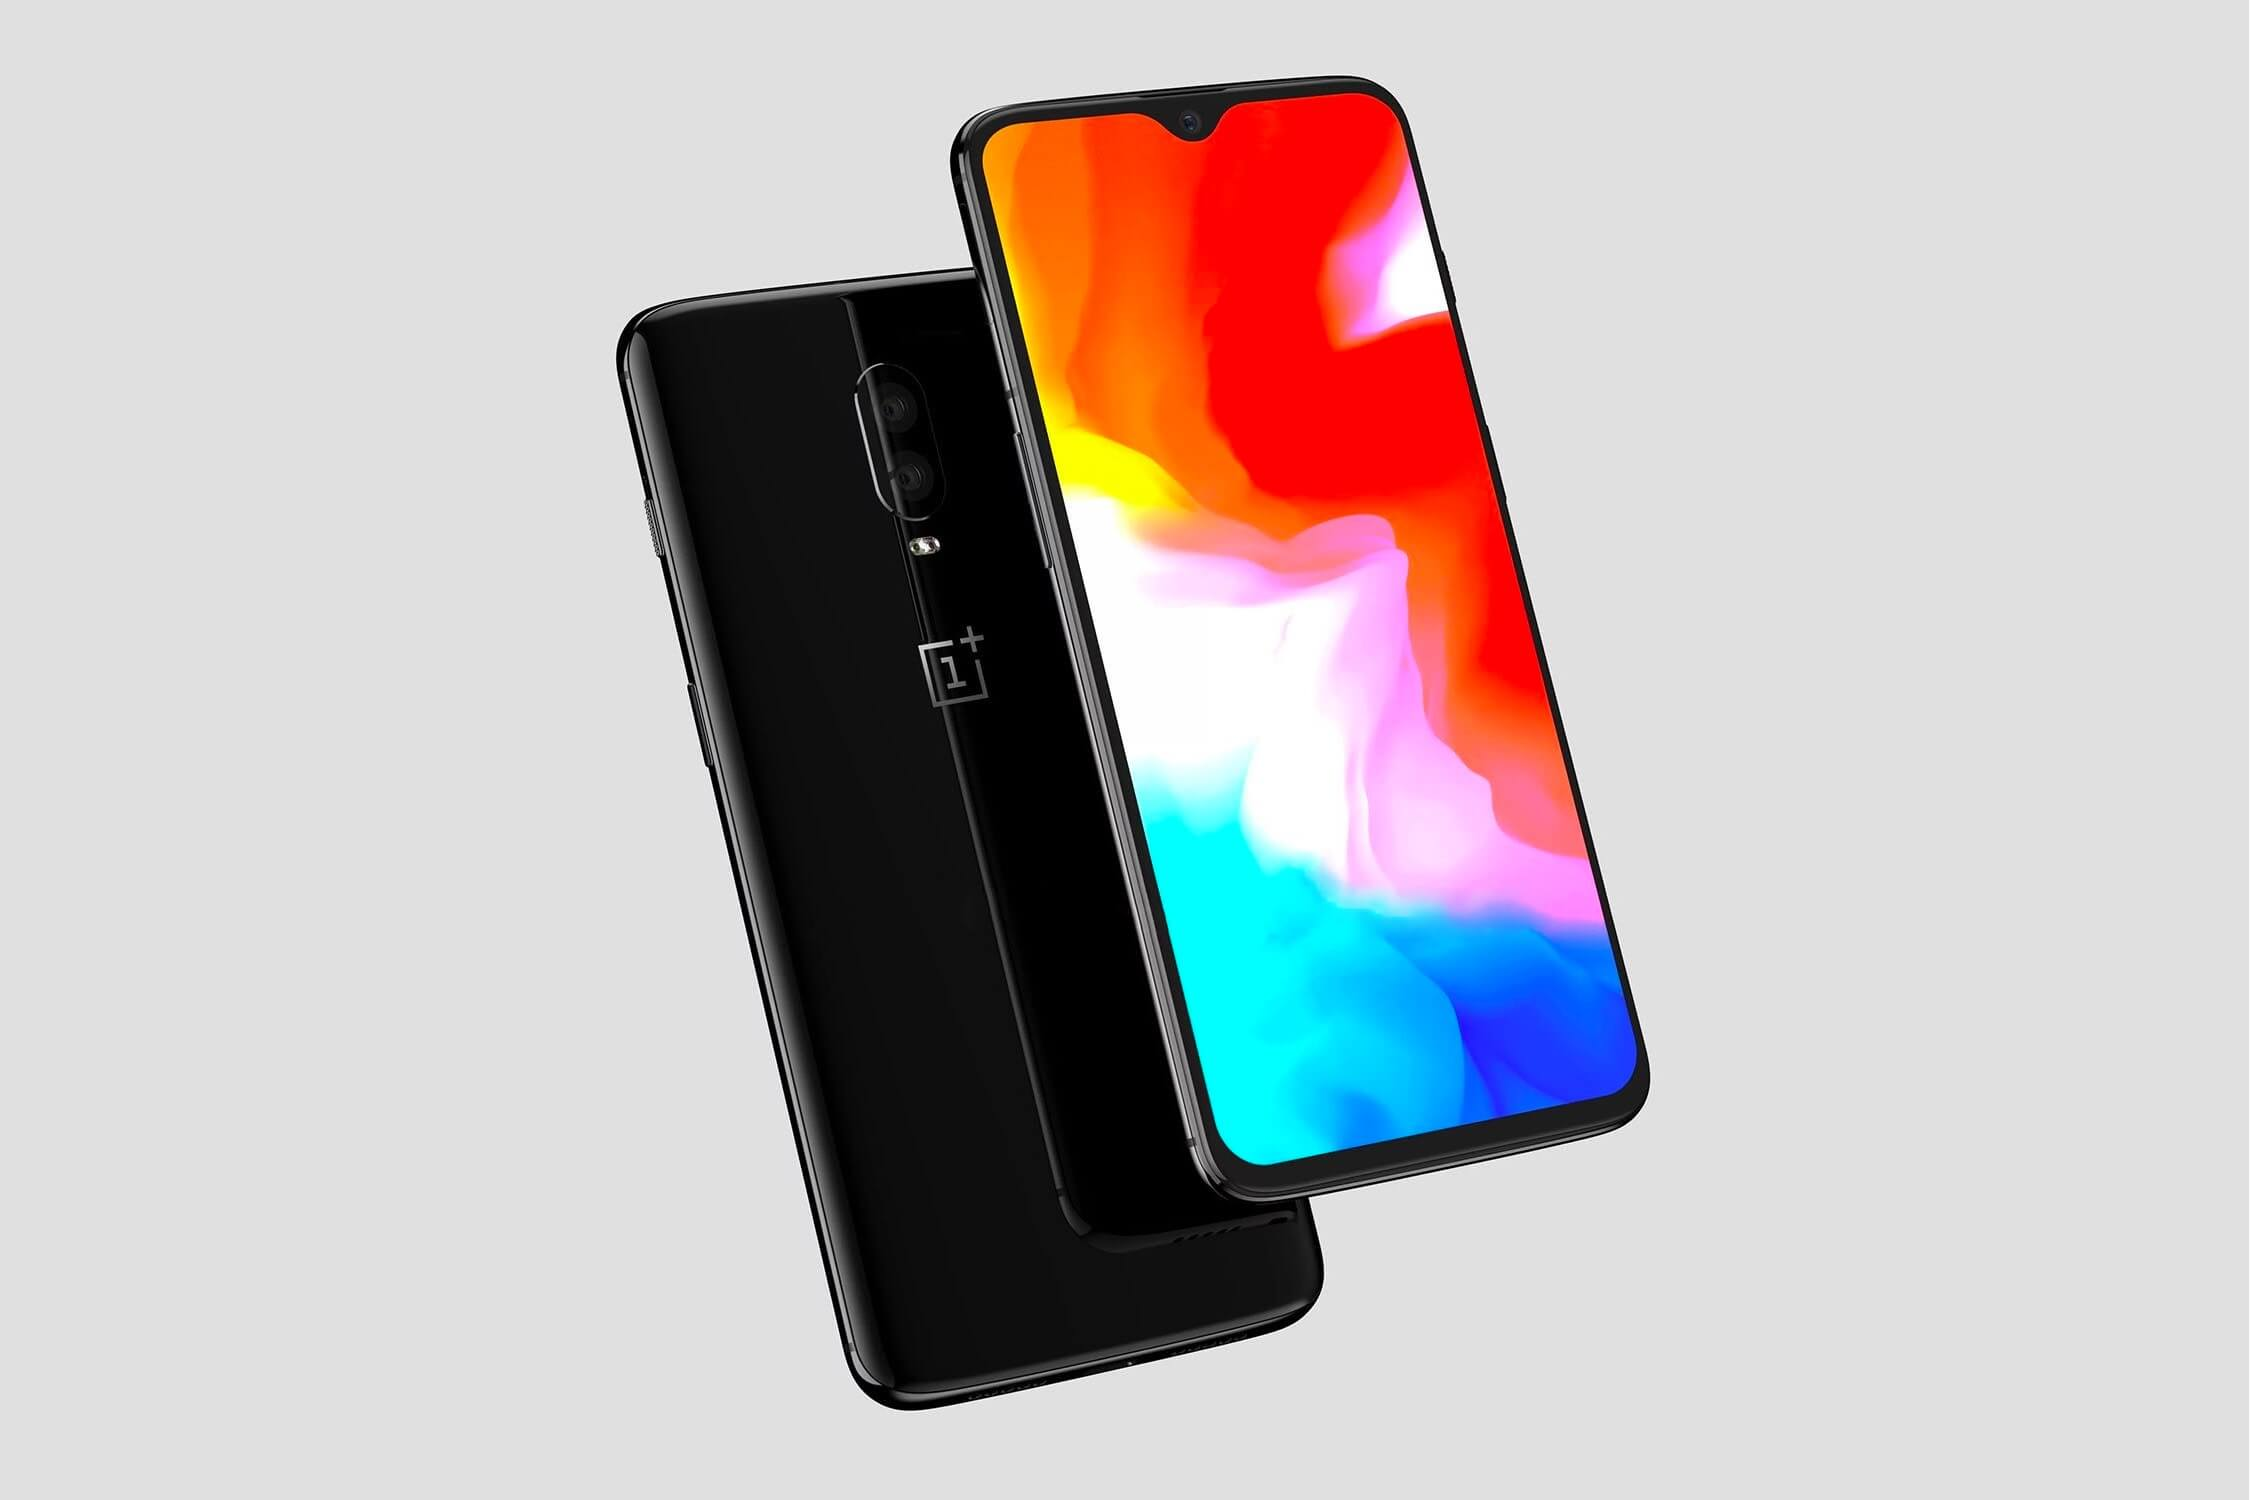 OnePlus 6T pricing, storage, RAM and color variants leaked